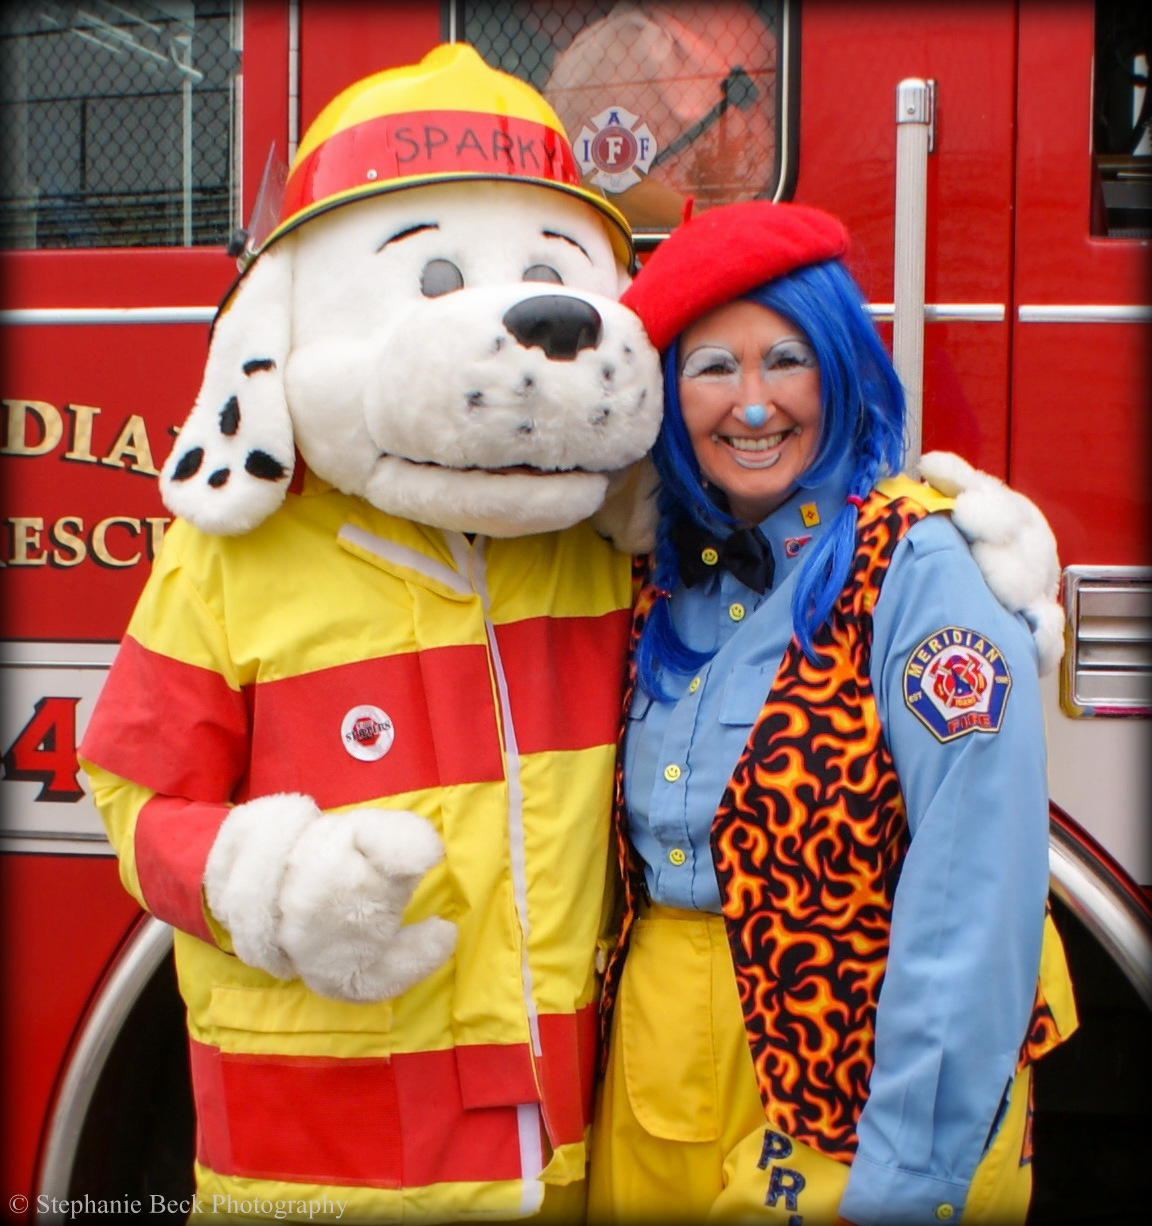 Sparky the dog- mascot for public education about fire safety